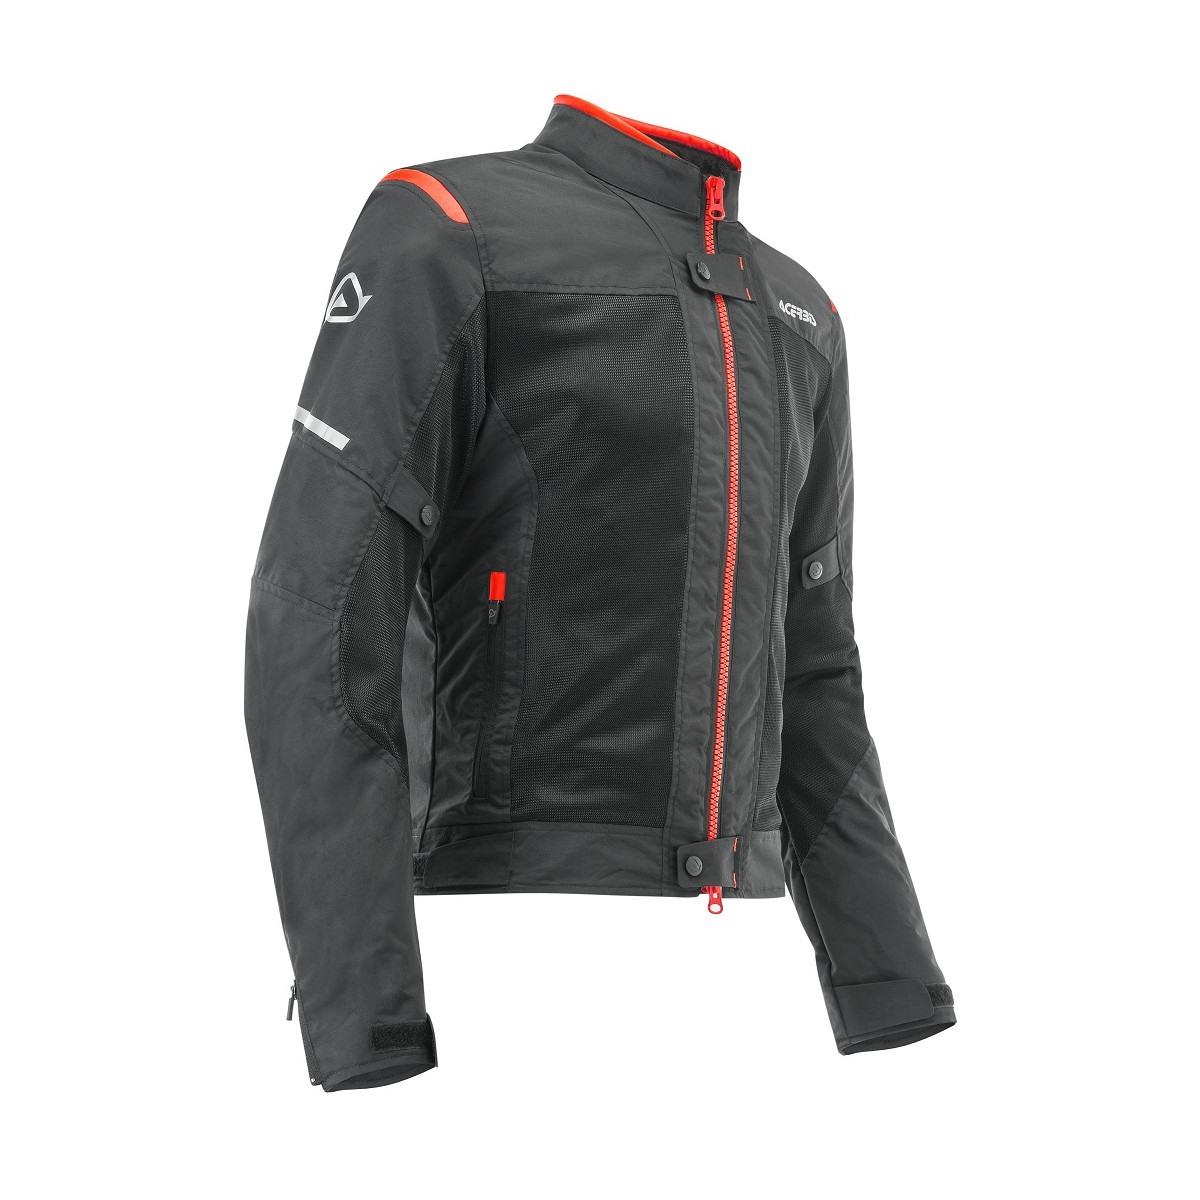 ACERBIS - RAMSEY MY VENTED 2.0 JACKET - BLACK RED